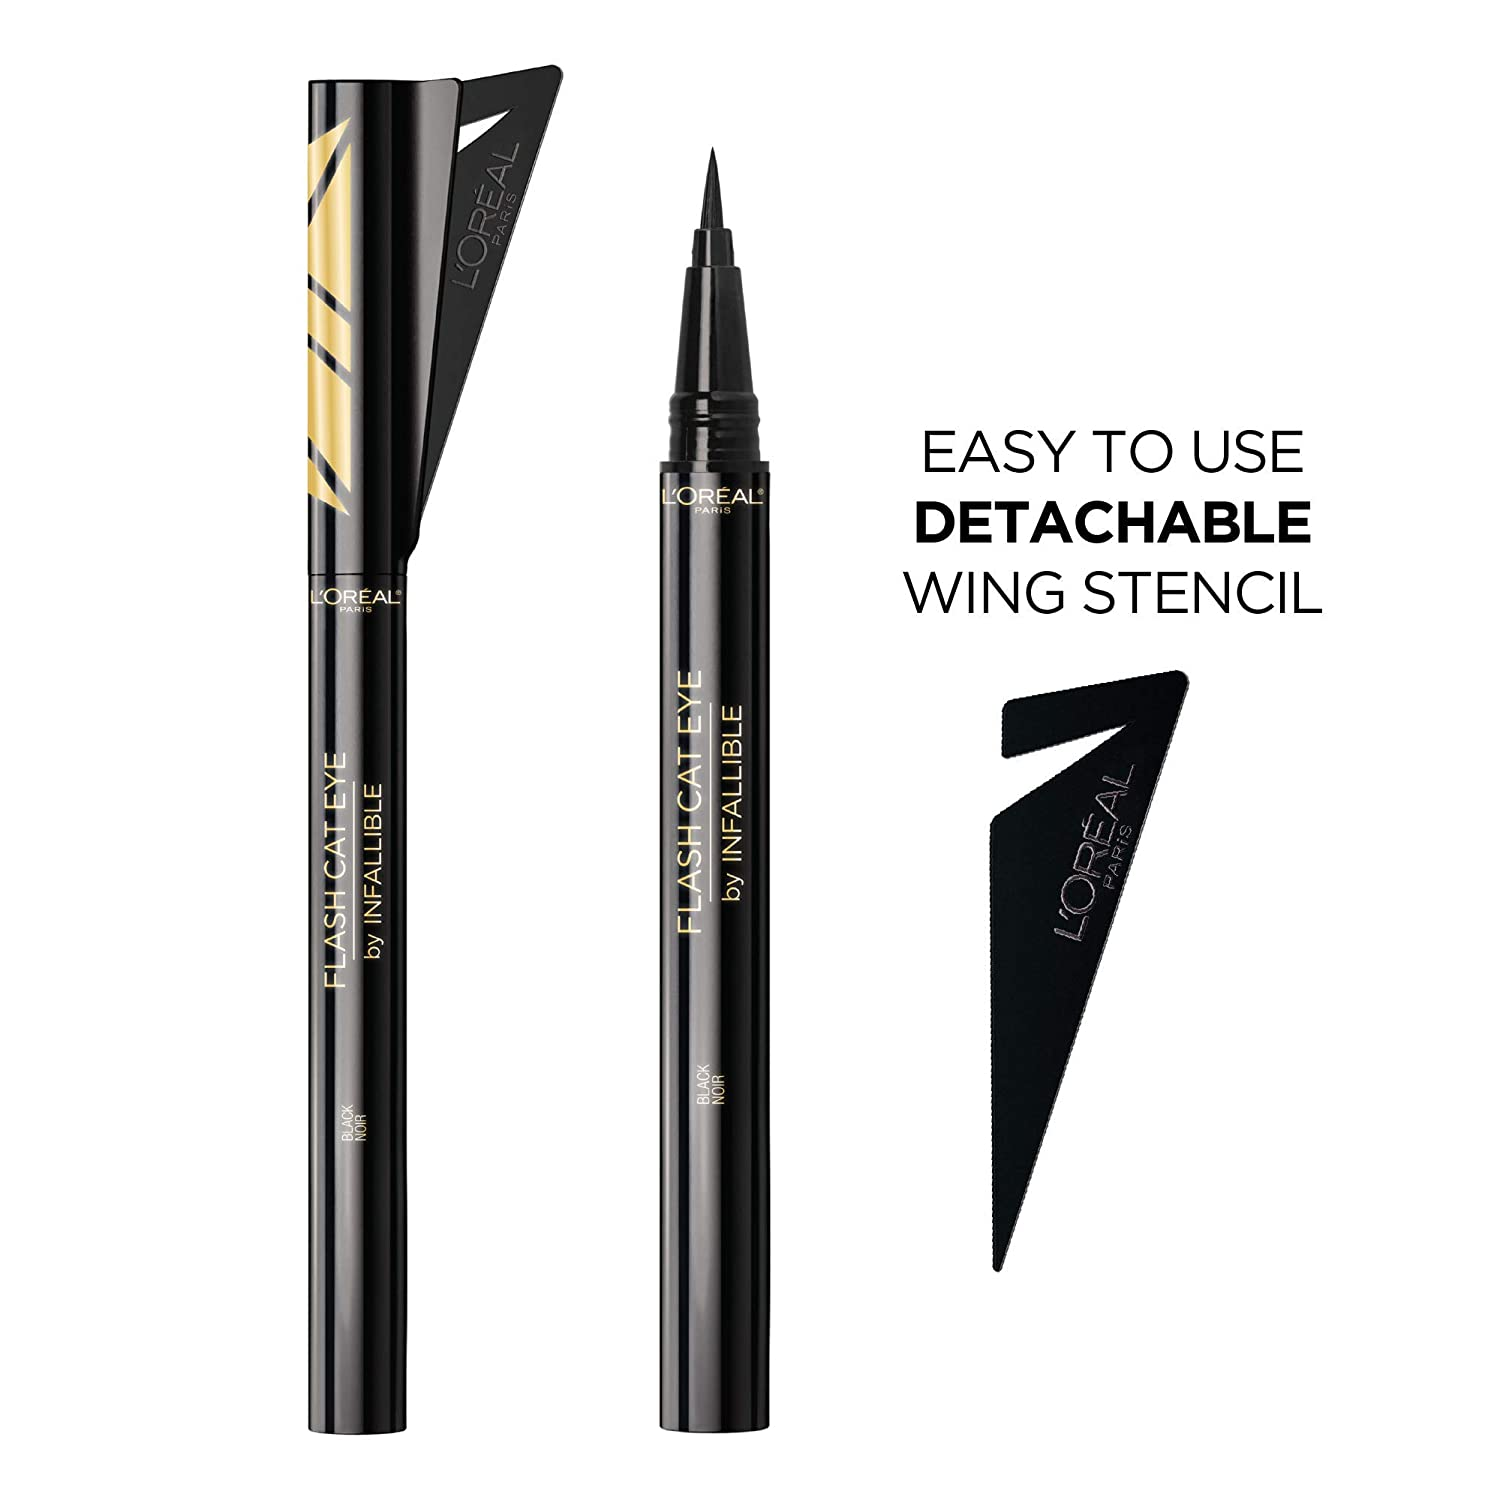 L'Oreal Paris Makeup Flash Cat Eye by Infallible, Waterproof Liquid Eyeliner, Easy-To-Use Brush Tip, Detachable Stencil for Winged Eyeliner, Precise Cat Eyes in a Flash, Black, 0.02 fl. oz.